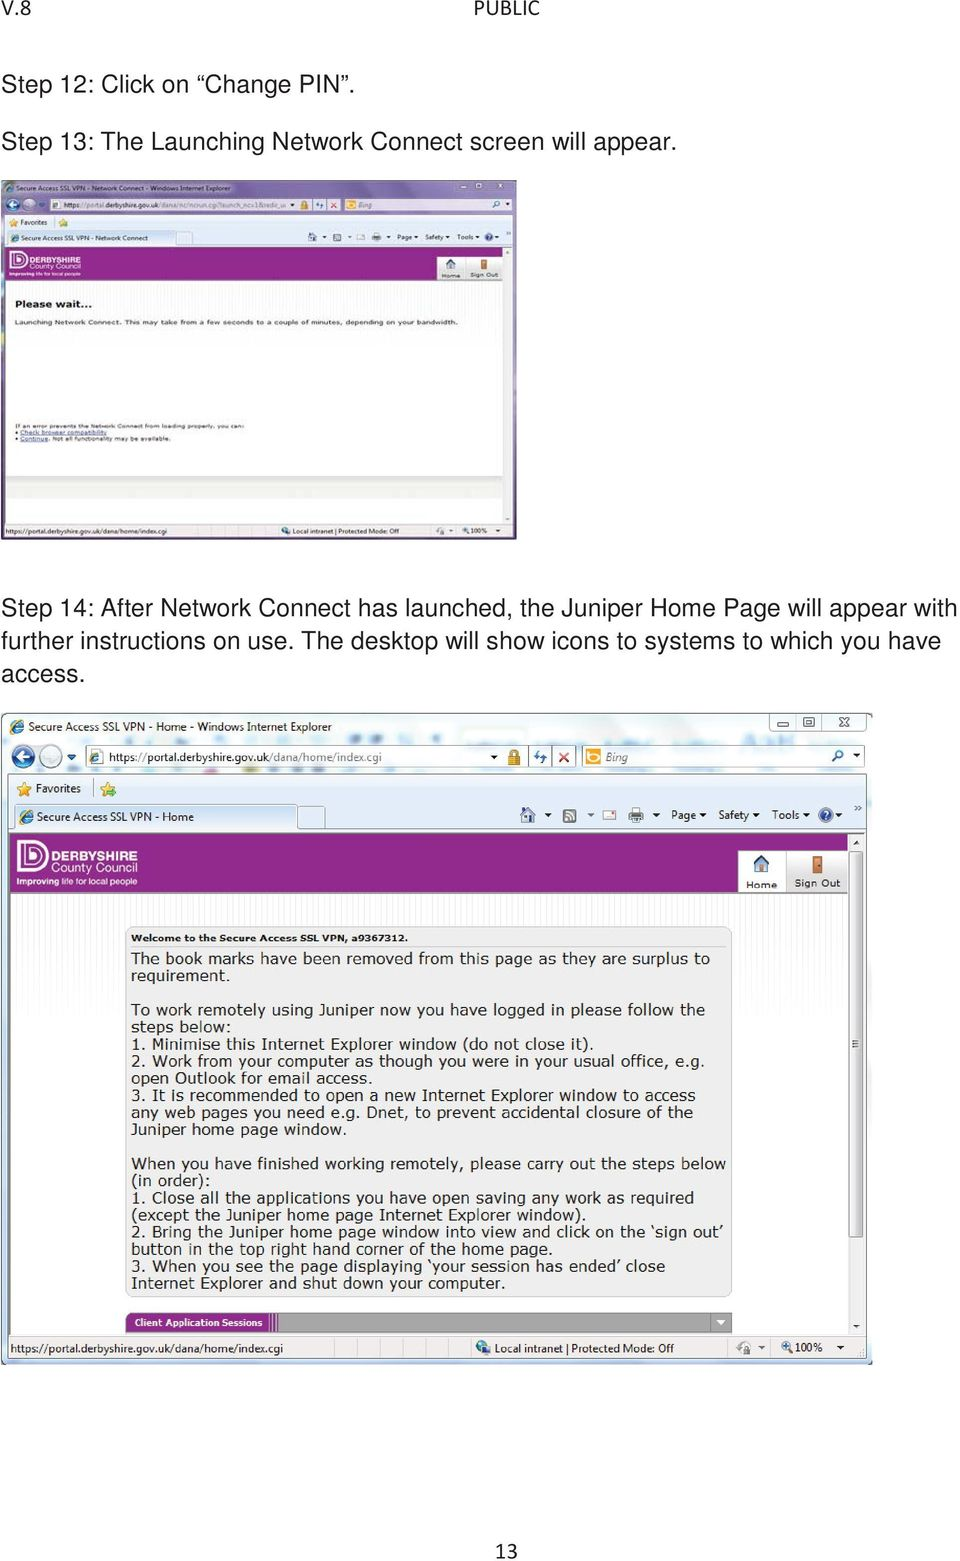 Step 14: After Network Connect has launched, the Juniper Home Page